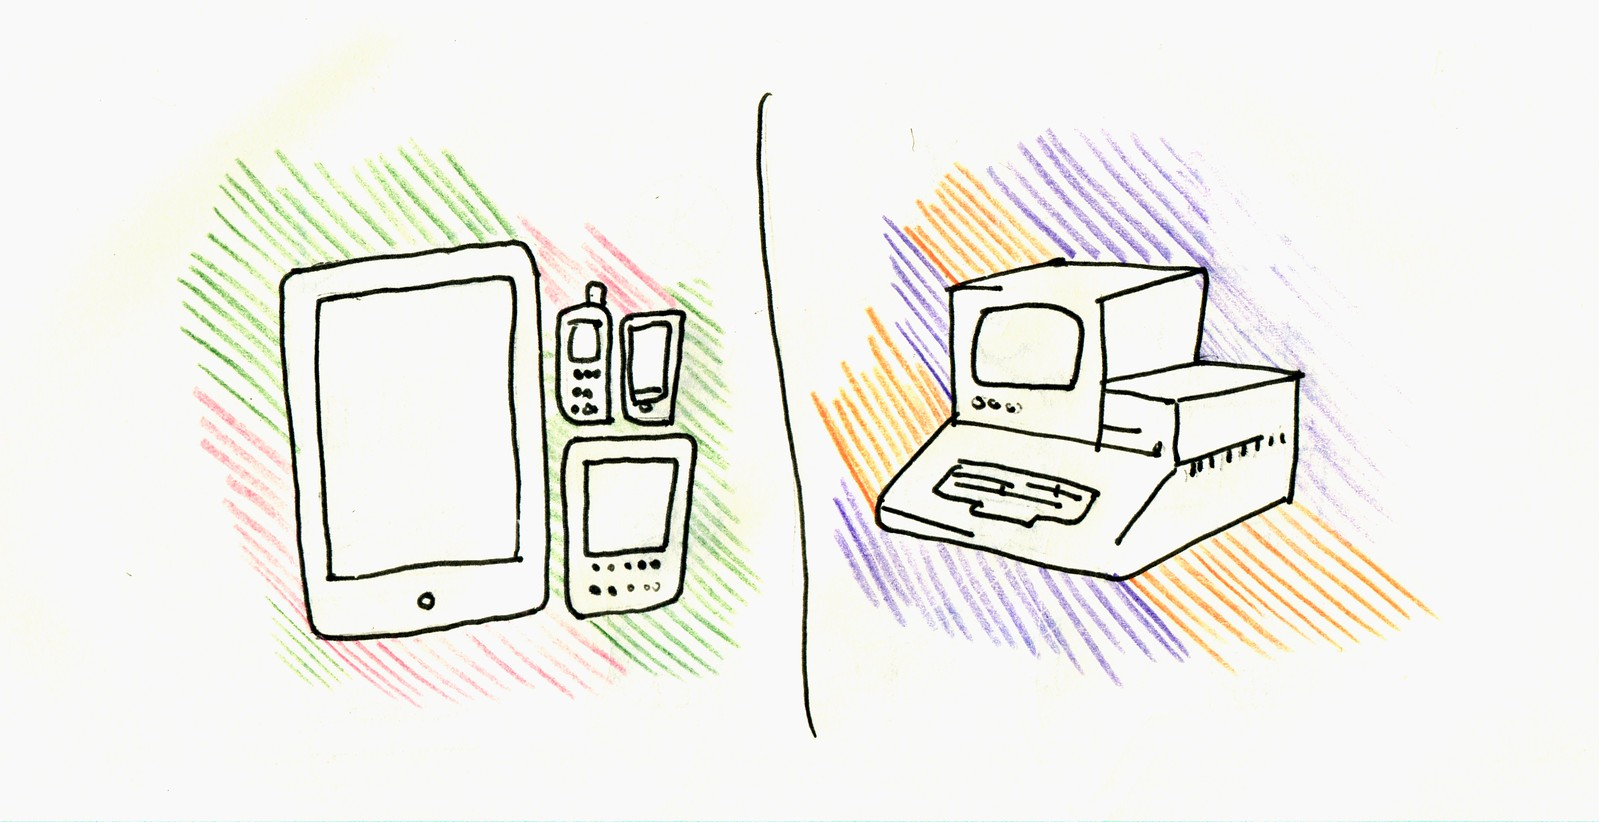 Computers in 1980s and 2010s